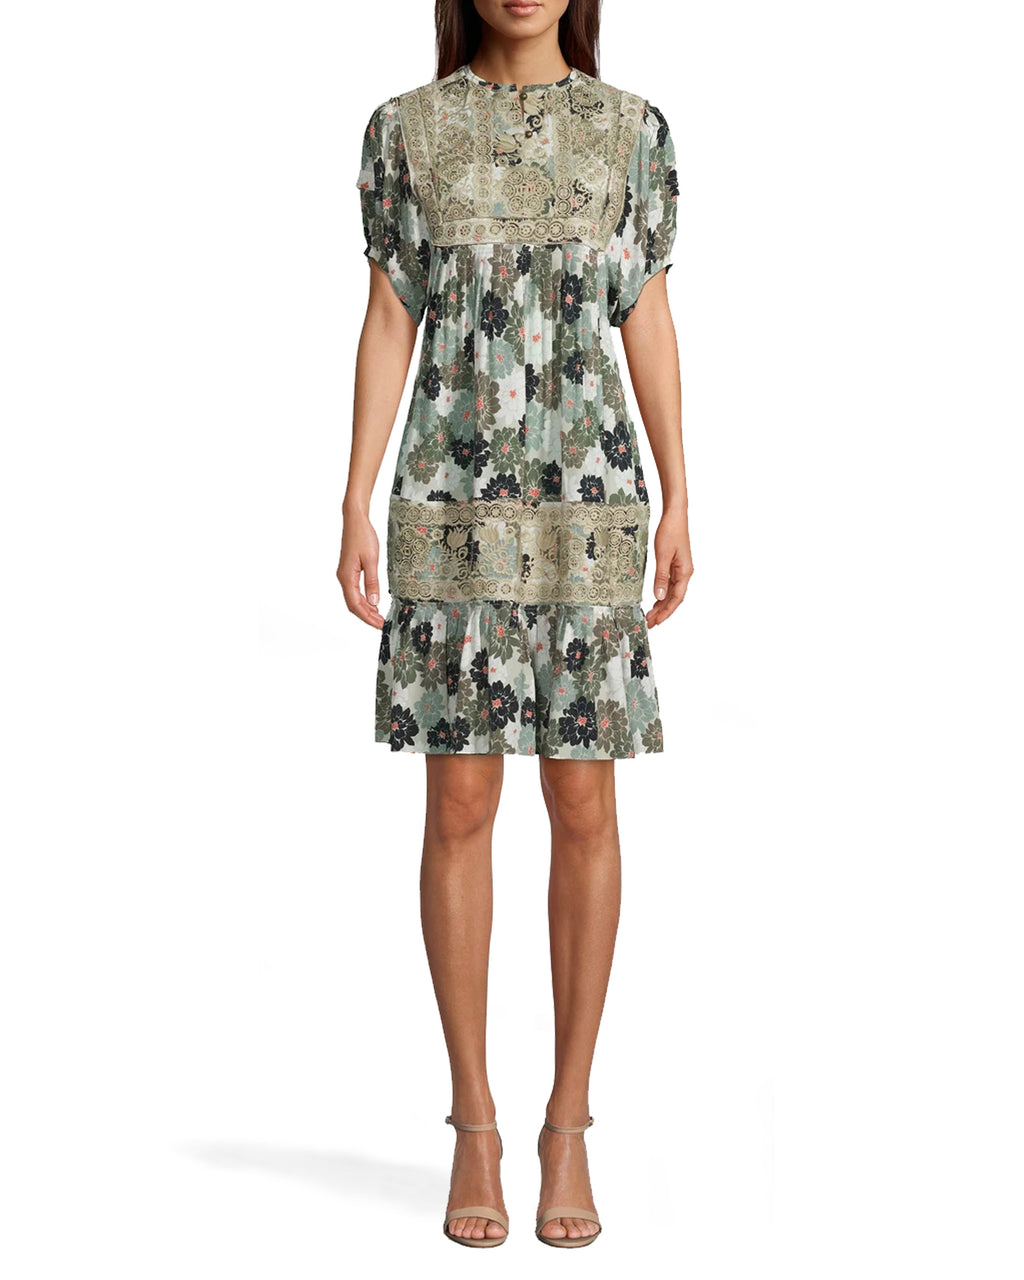 CD17956 - CAMO DELILAH SILK EMBROIDERED DRESS - dresses - short - THIS MINI DRESS IS MADE FROM LIGHTWEIGHT SILK AND PERFECTLY TRANSITIONS FROM SUMMER TO FALL. DESIGNED IN OUR NEW CAMO DELILAH PRINT WITH DELICATE EMBROIDERY. SLIGHT RUCHING DETAIL ON THE SLEEVES. Add 1 line break STYLIST TIP: WEAR WITH SANDALS IN THE SUMMER AND ANKLE BOOTS IN THE FALL.